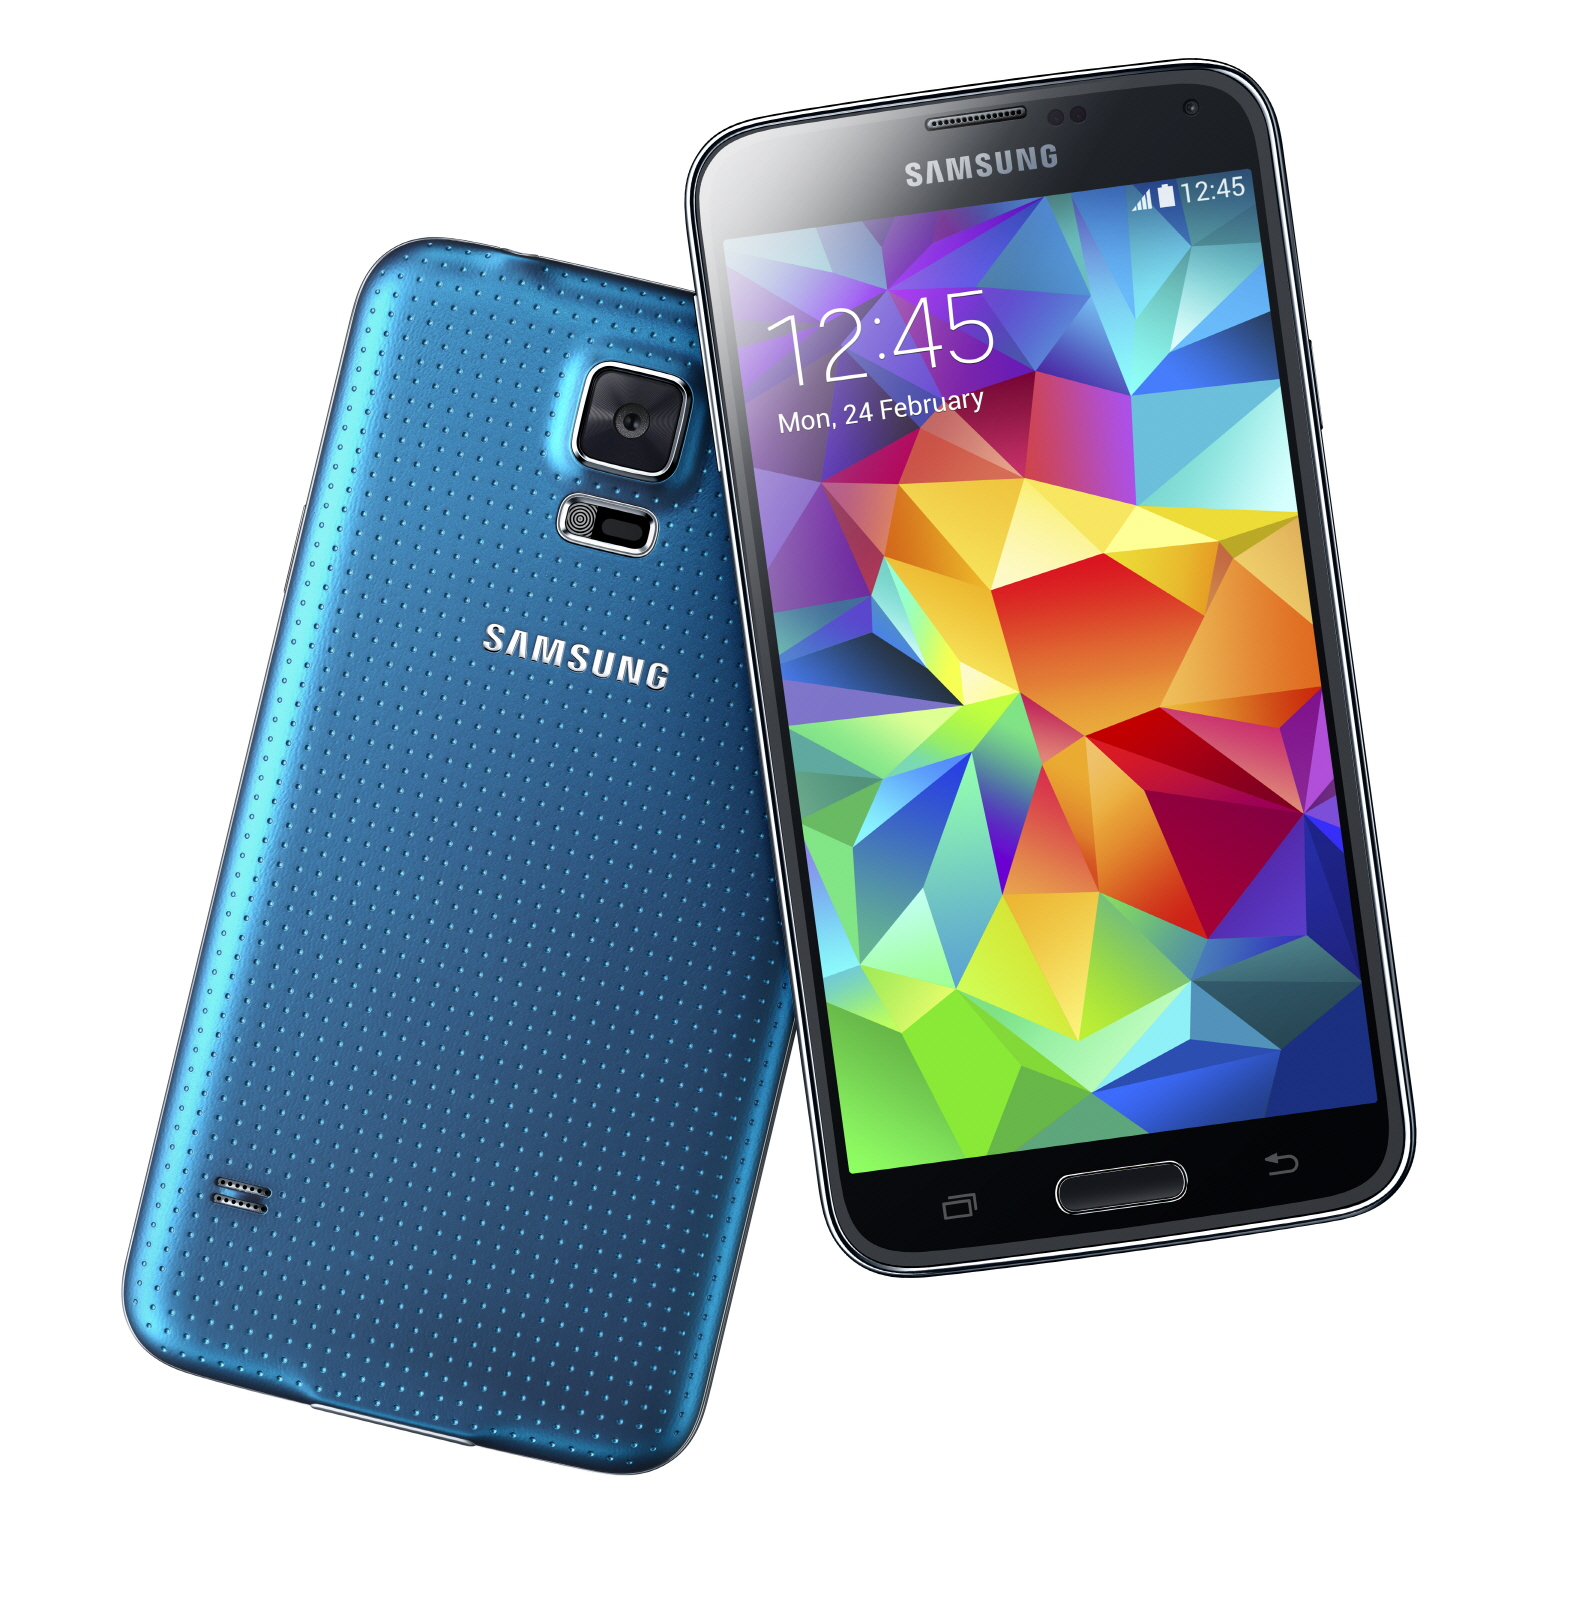 Samsung Releasing Galaxy S5 April 11